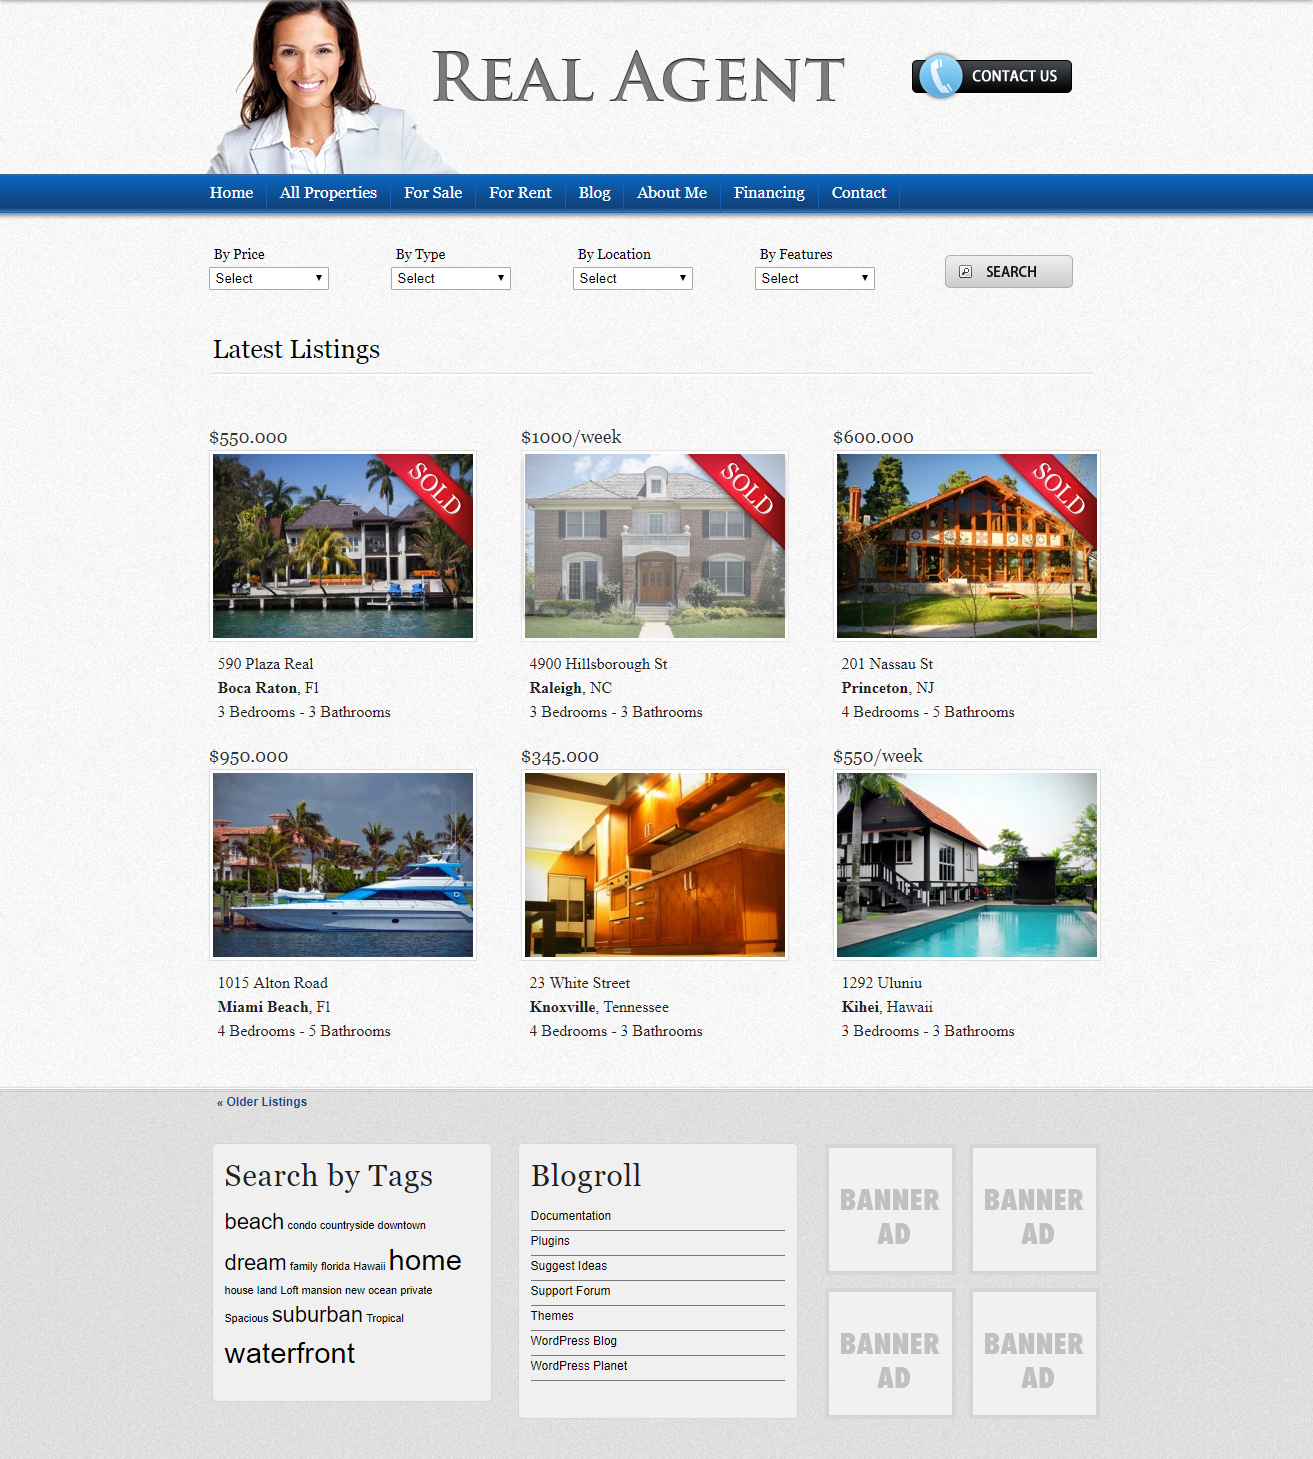 Real Agent theme